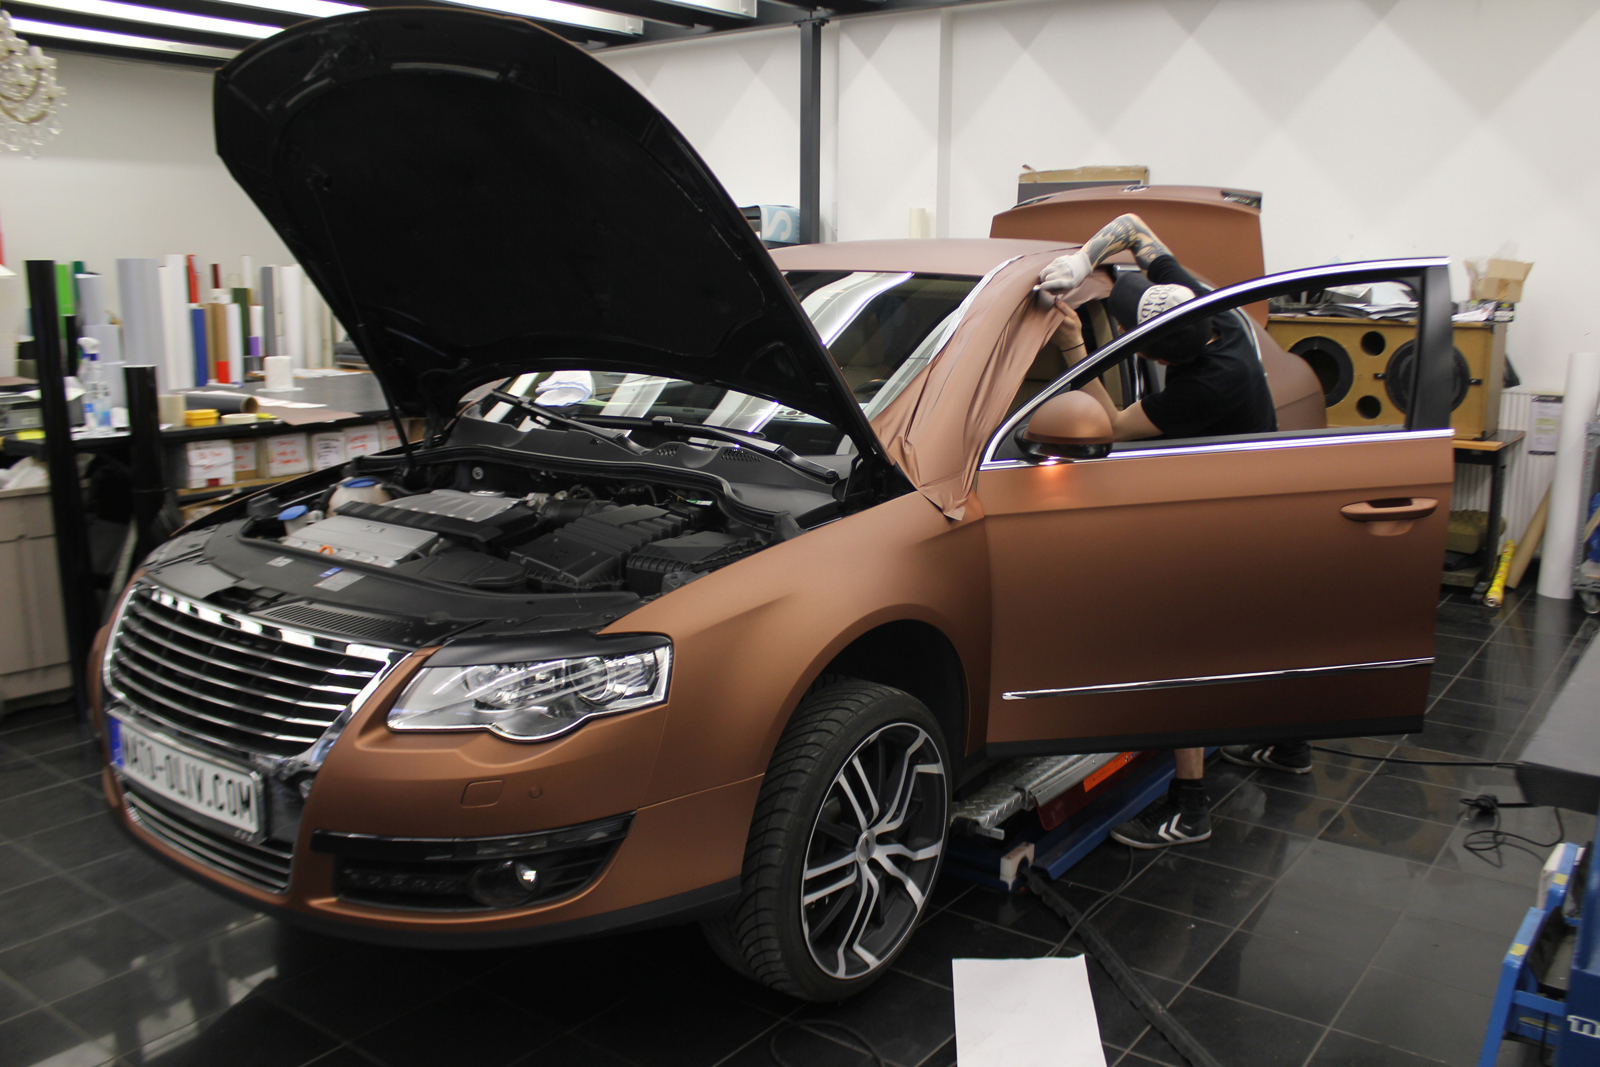 VW_Passat_Folierung_Bronze_matt_metallic_06